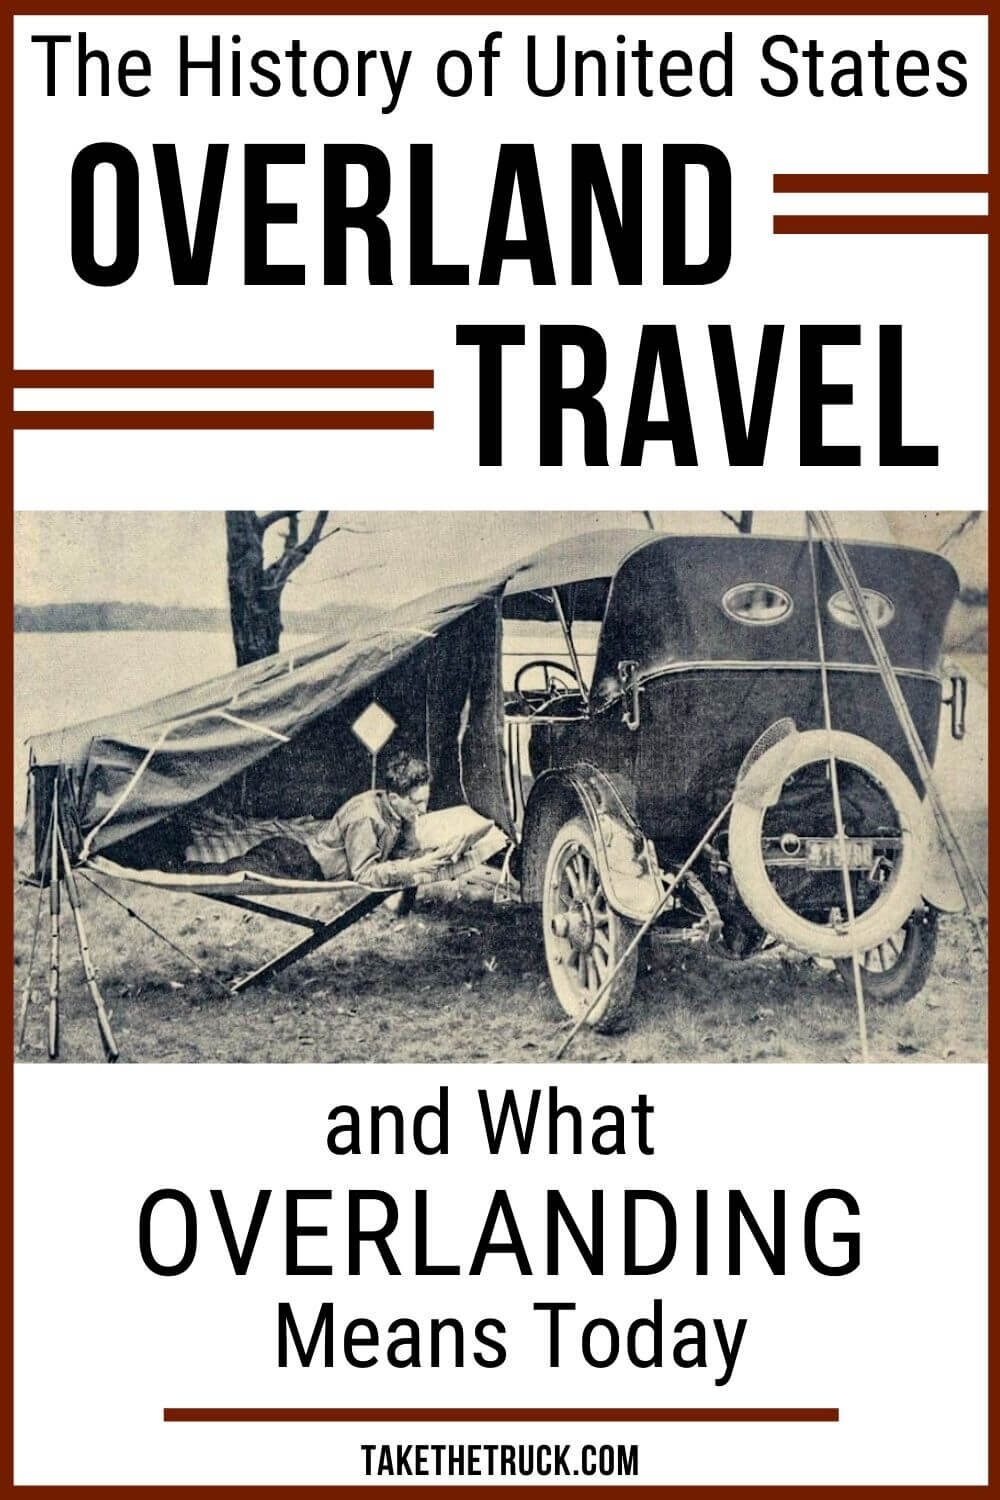 Fun and quick read all about the history of overlanding and overland travel in the U.S. Helps to answer the question, What is overlanding? and gives overlanding basics for beginners.